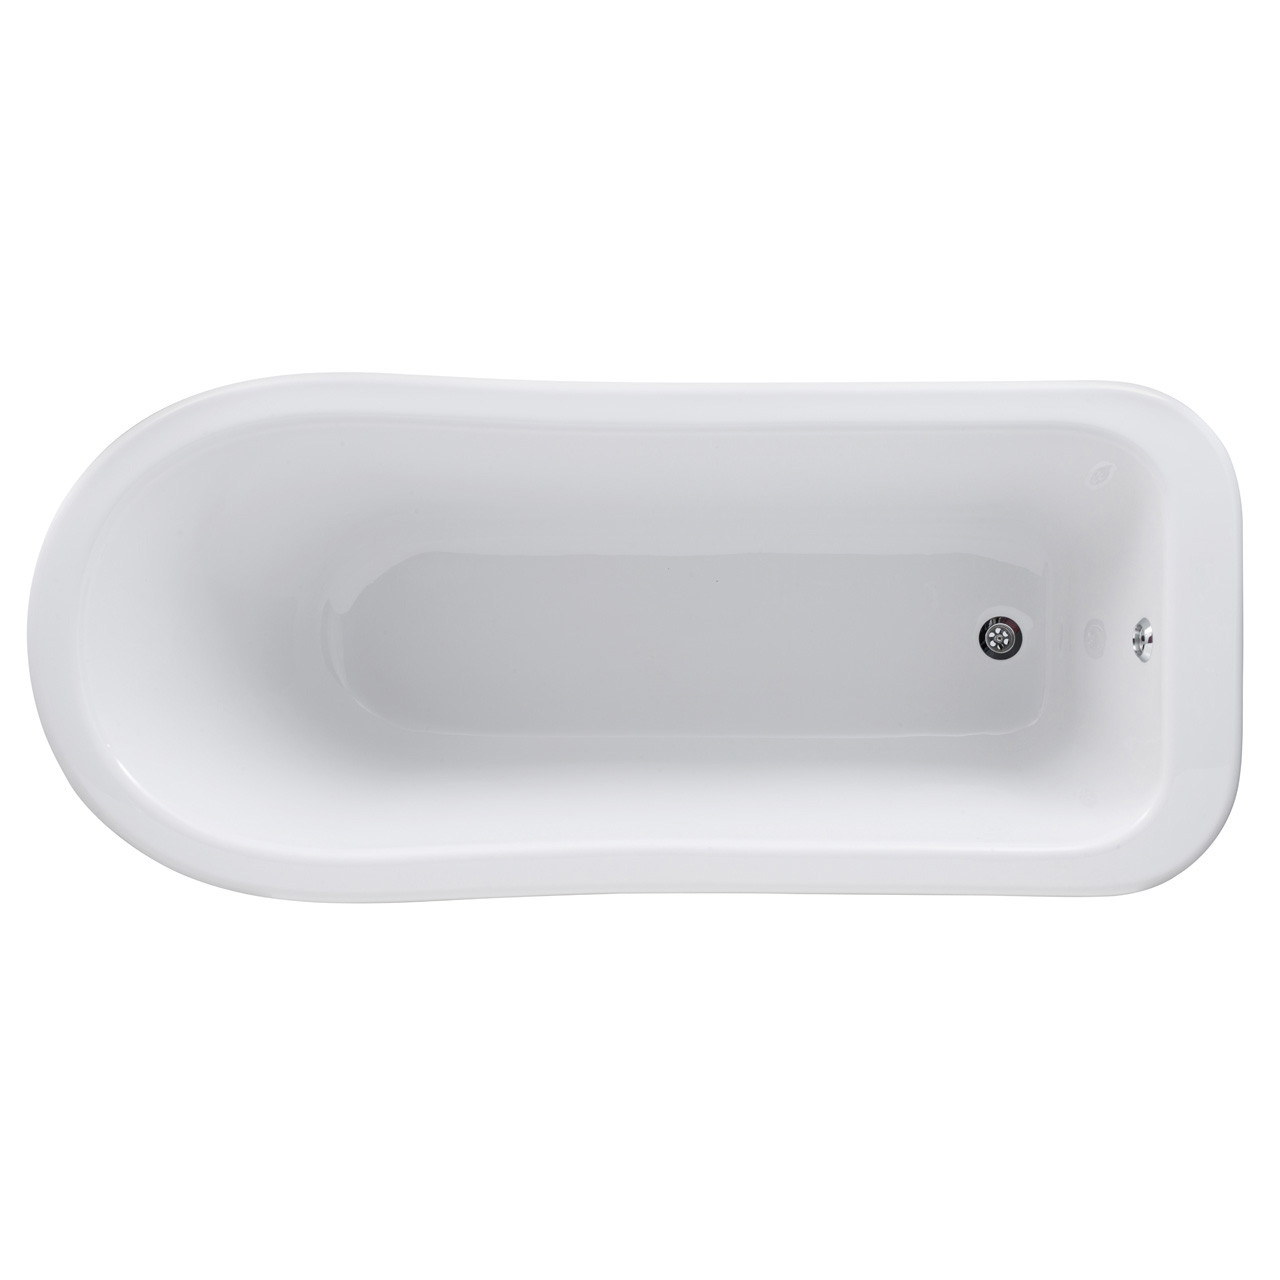 Premier White Kensington 1700 Single Ended Freestanding Bath with Corbel Legs - RL1690T